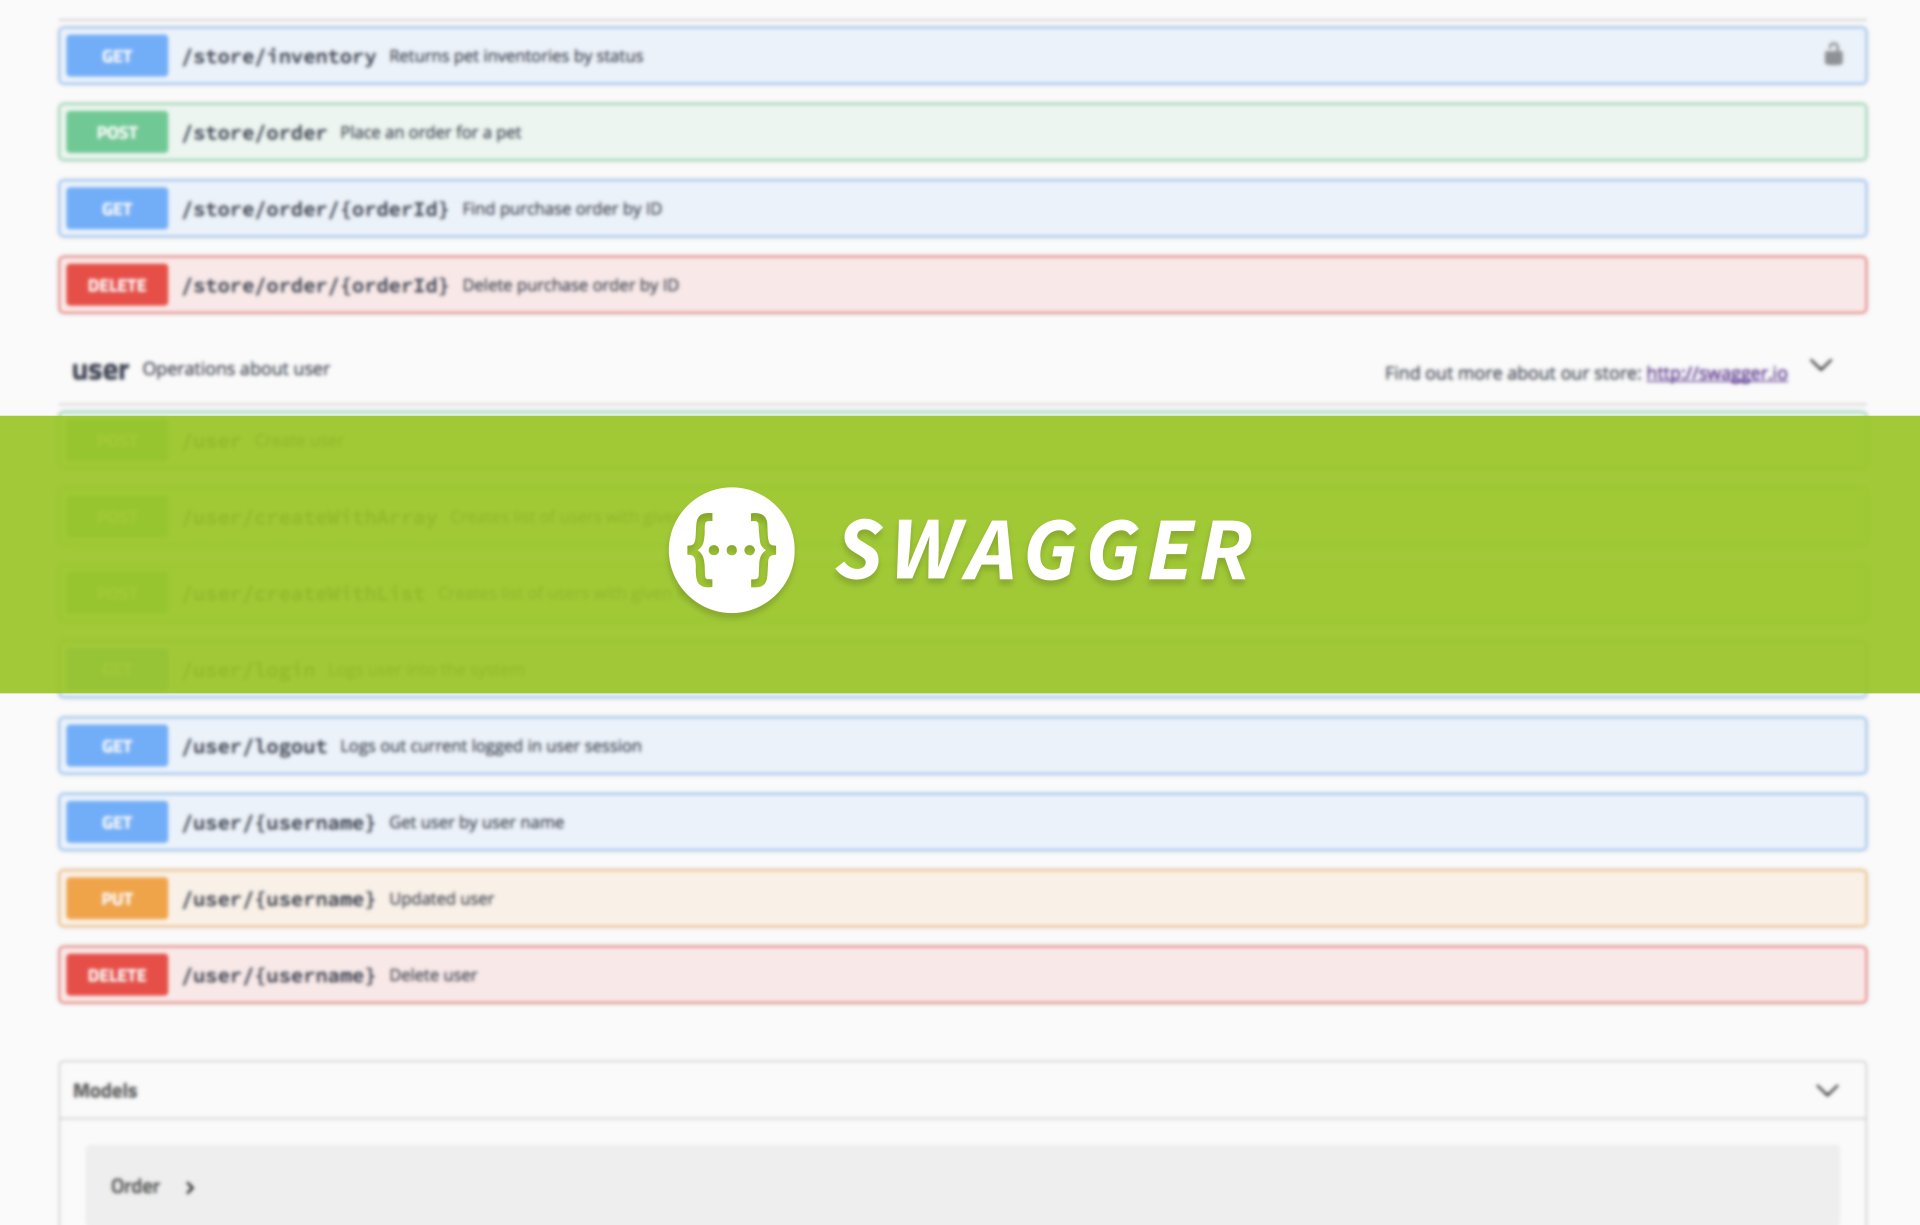 Server side Swift — OpenAPI (Swagger) - ITNEXT